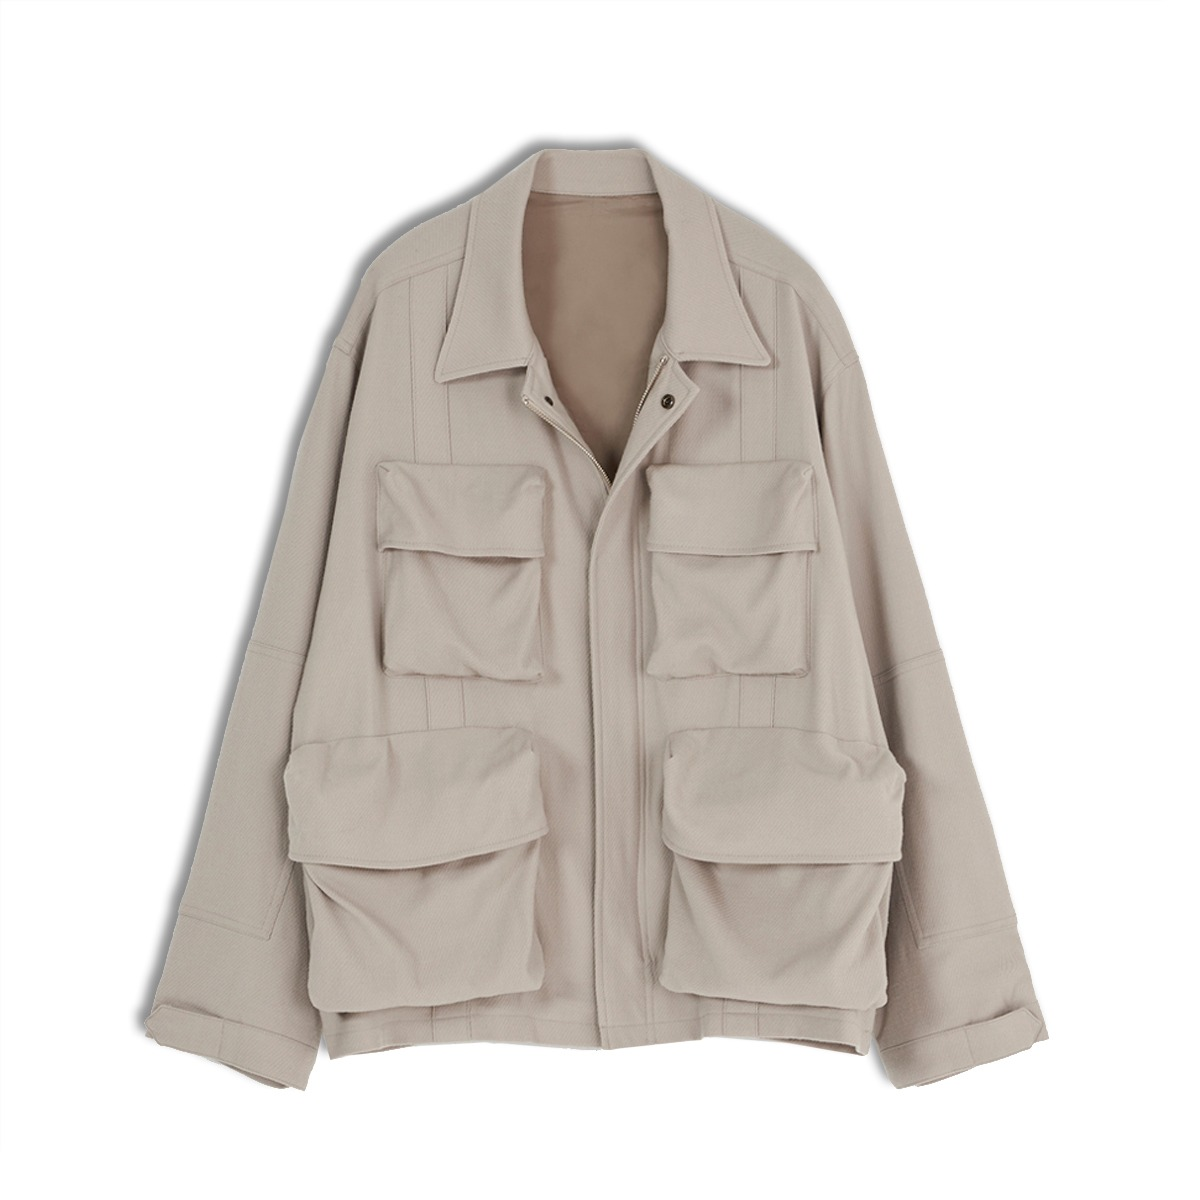 [YOUTH] M70 FILED JACKET 'BEIGE'